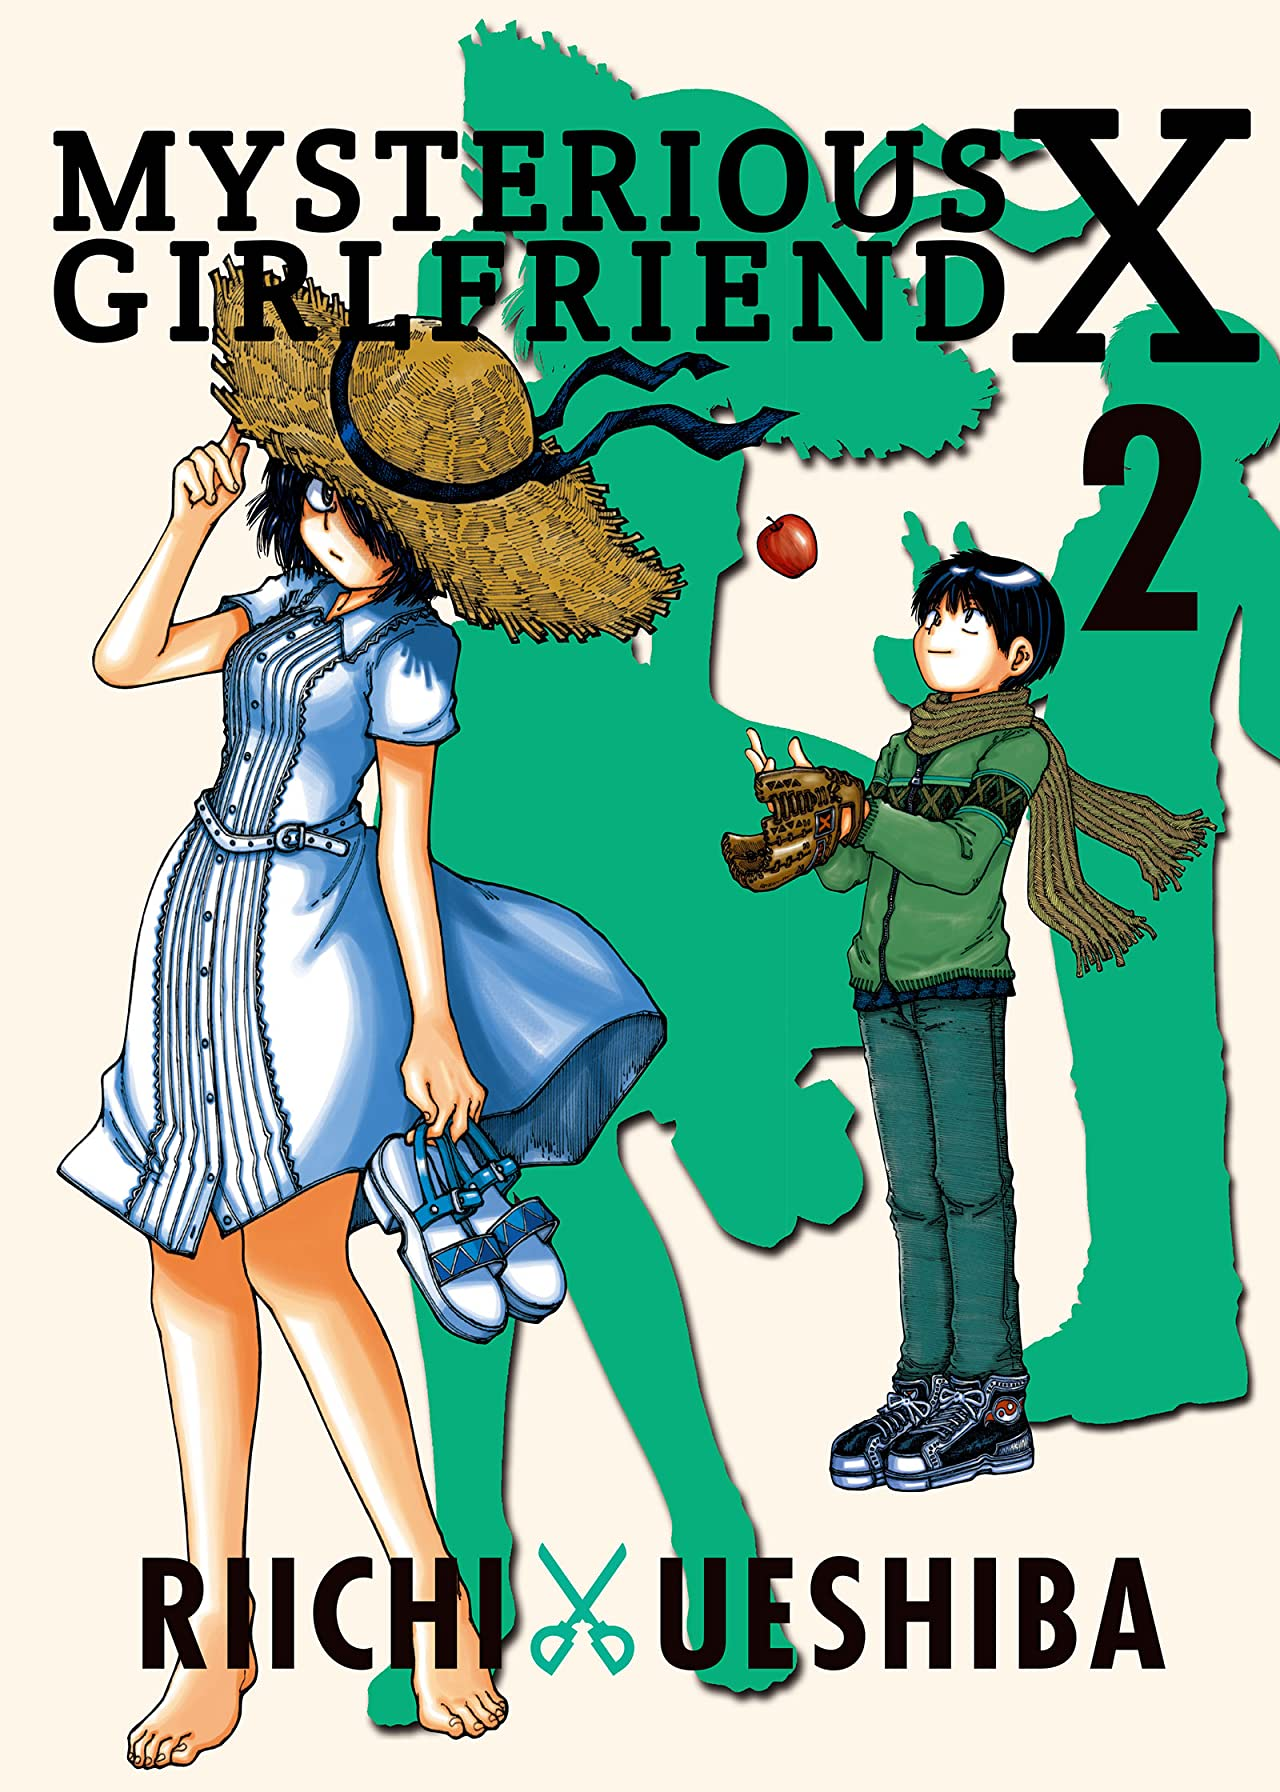 Mysterious Girlfriend X Vol. 2